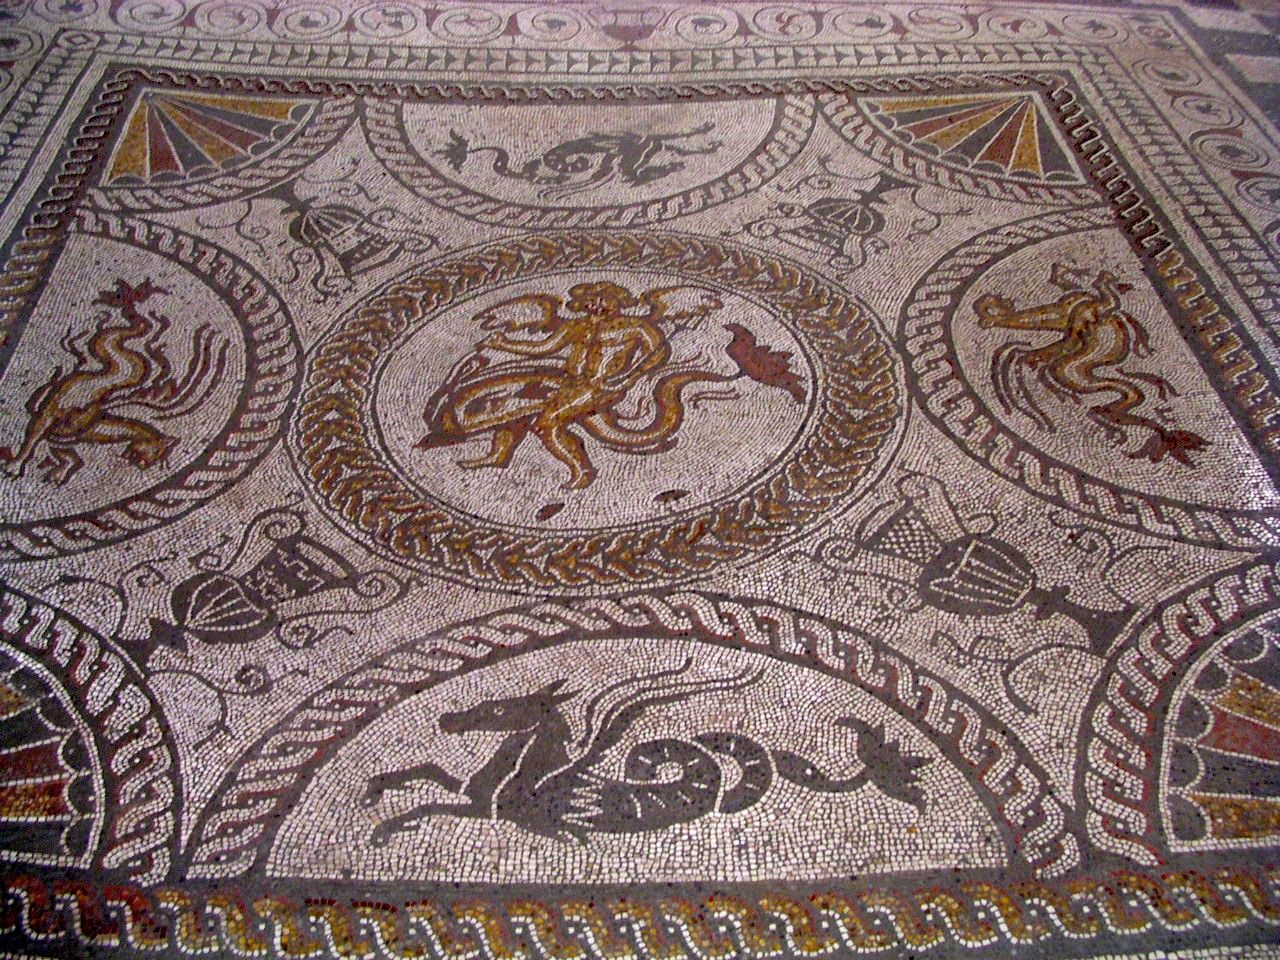 The Boy On A Dolphin Mosaic At Fishbourne Roman Palace